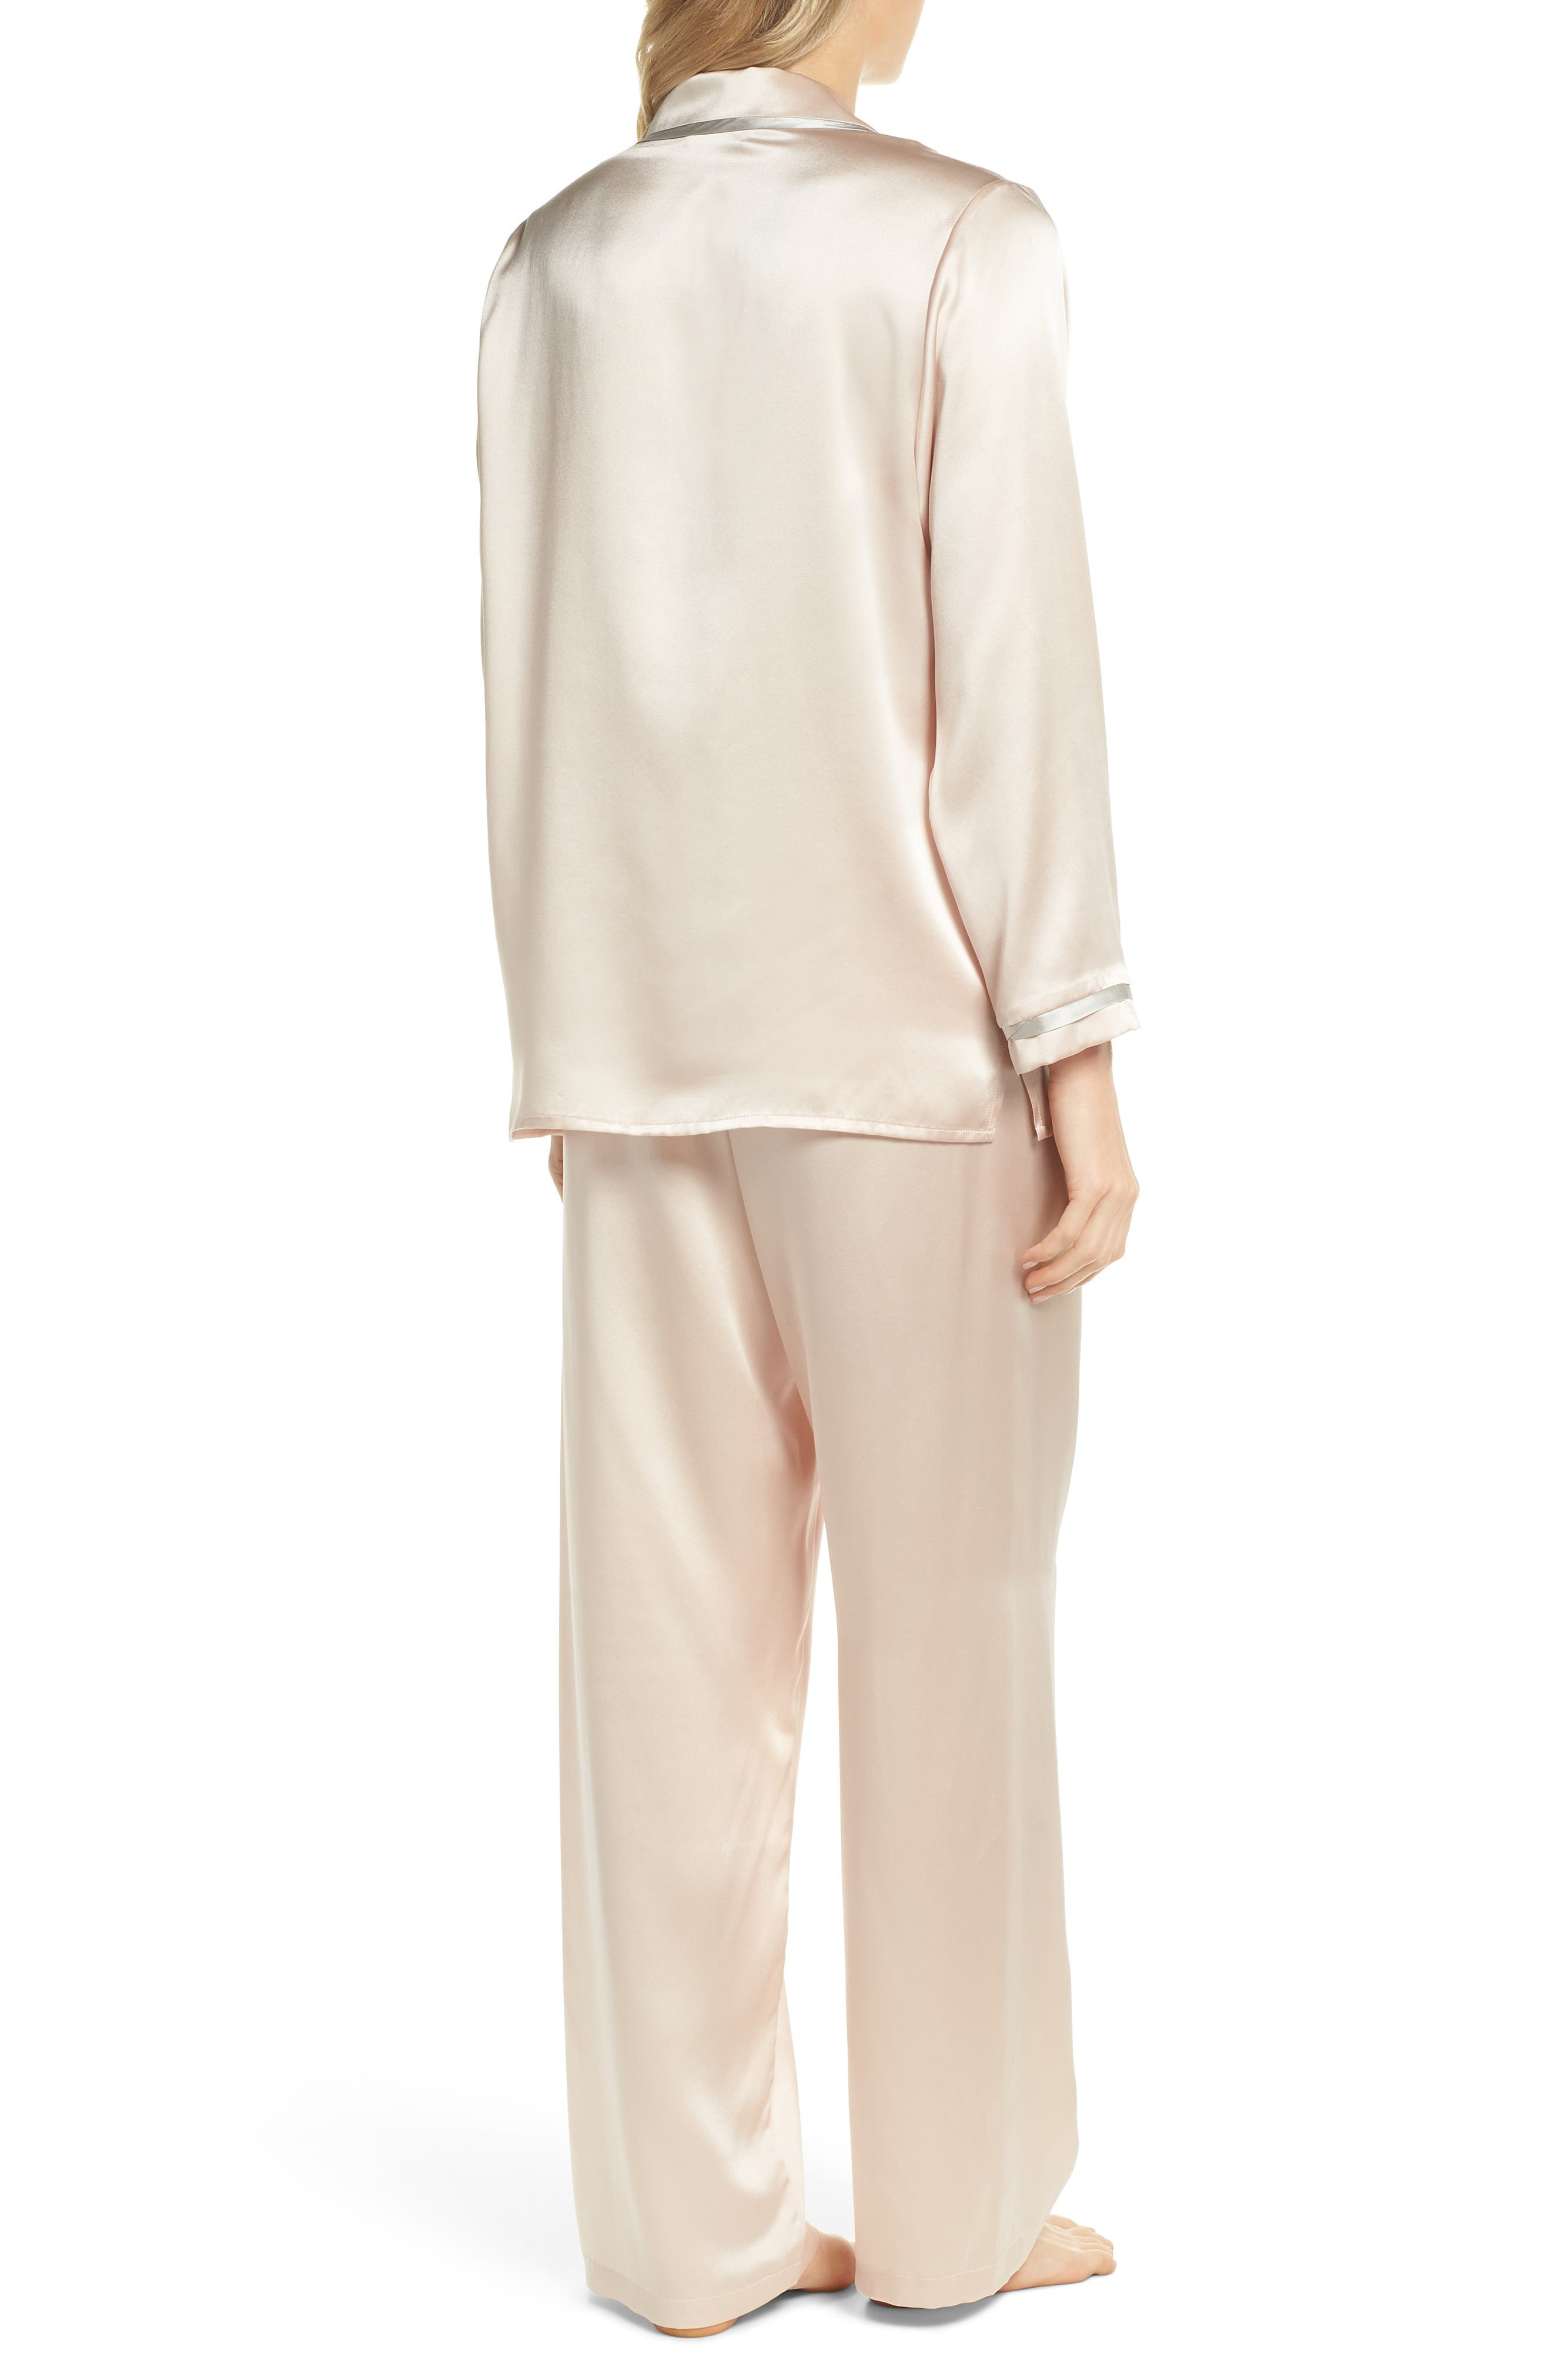 Coco Silk Pajamas,                             Alternate thumbnail 2, color,